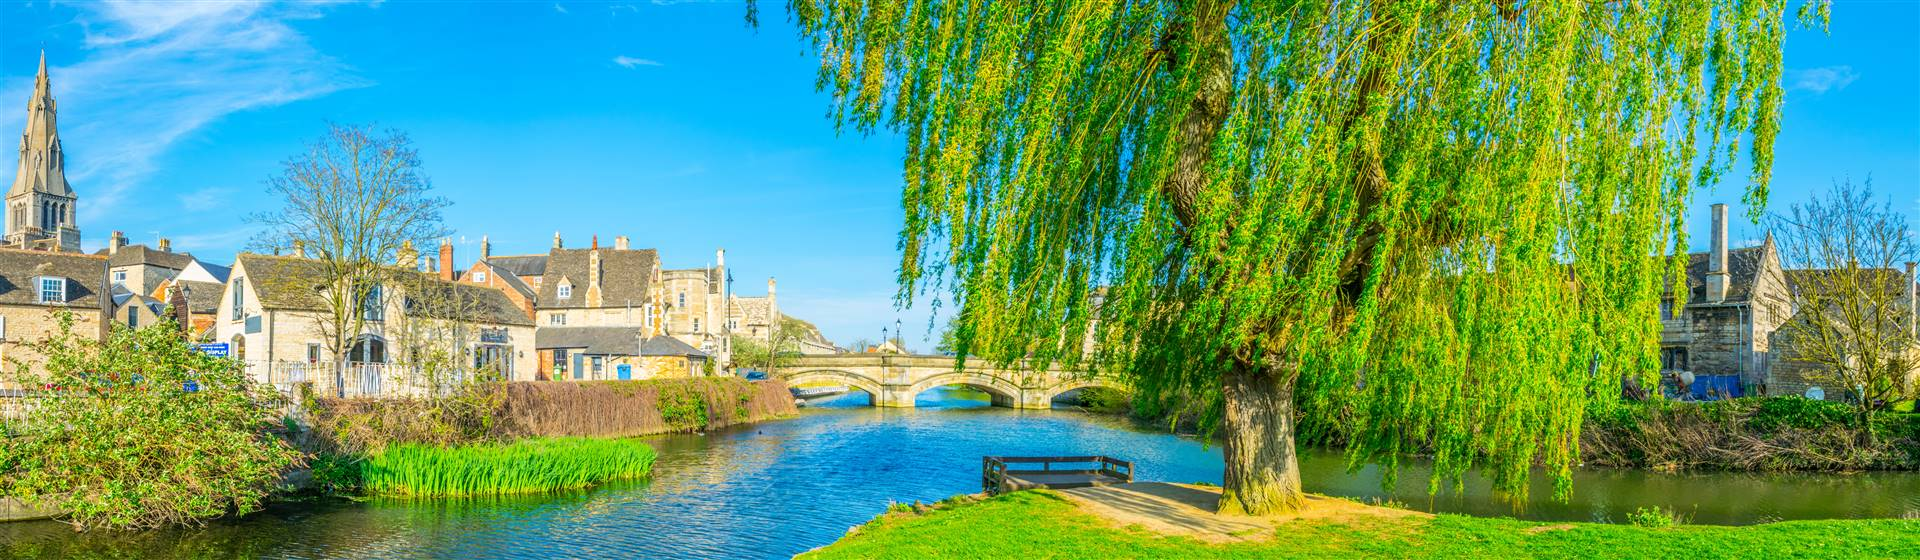 The beautiful riverside town of Stamford